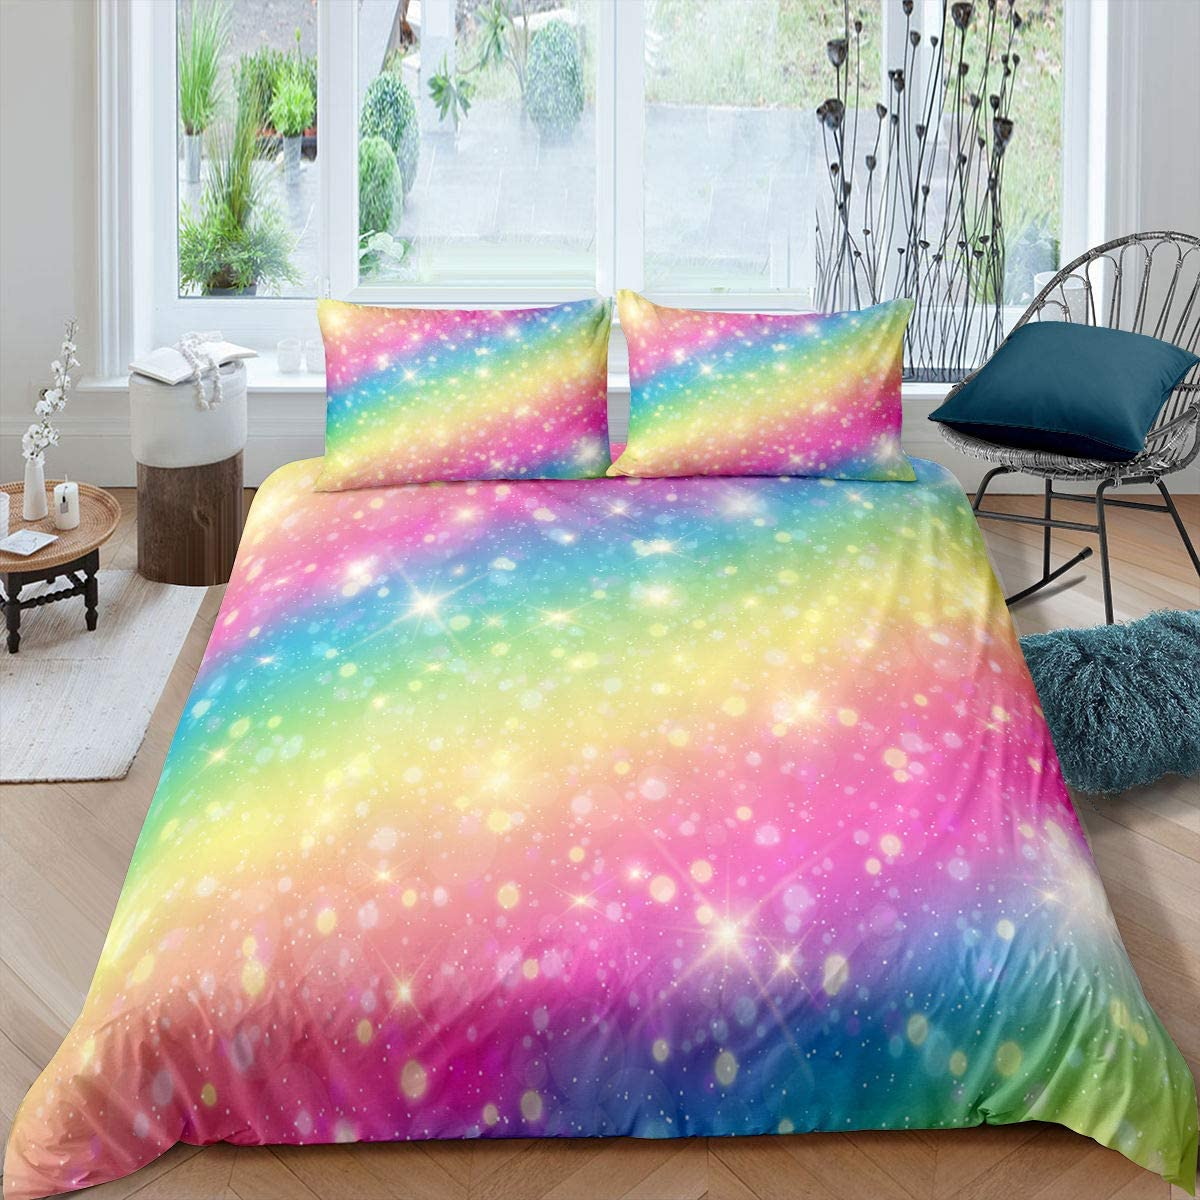 Rainbow Color Comforter Cover Set Girls Kids Cut Direct sale of Year-end gift manufacturer Decor Blingling